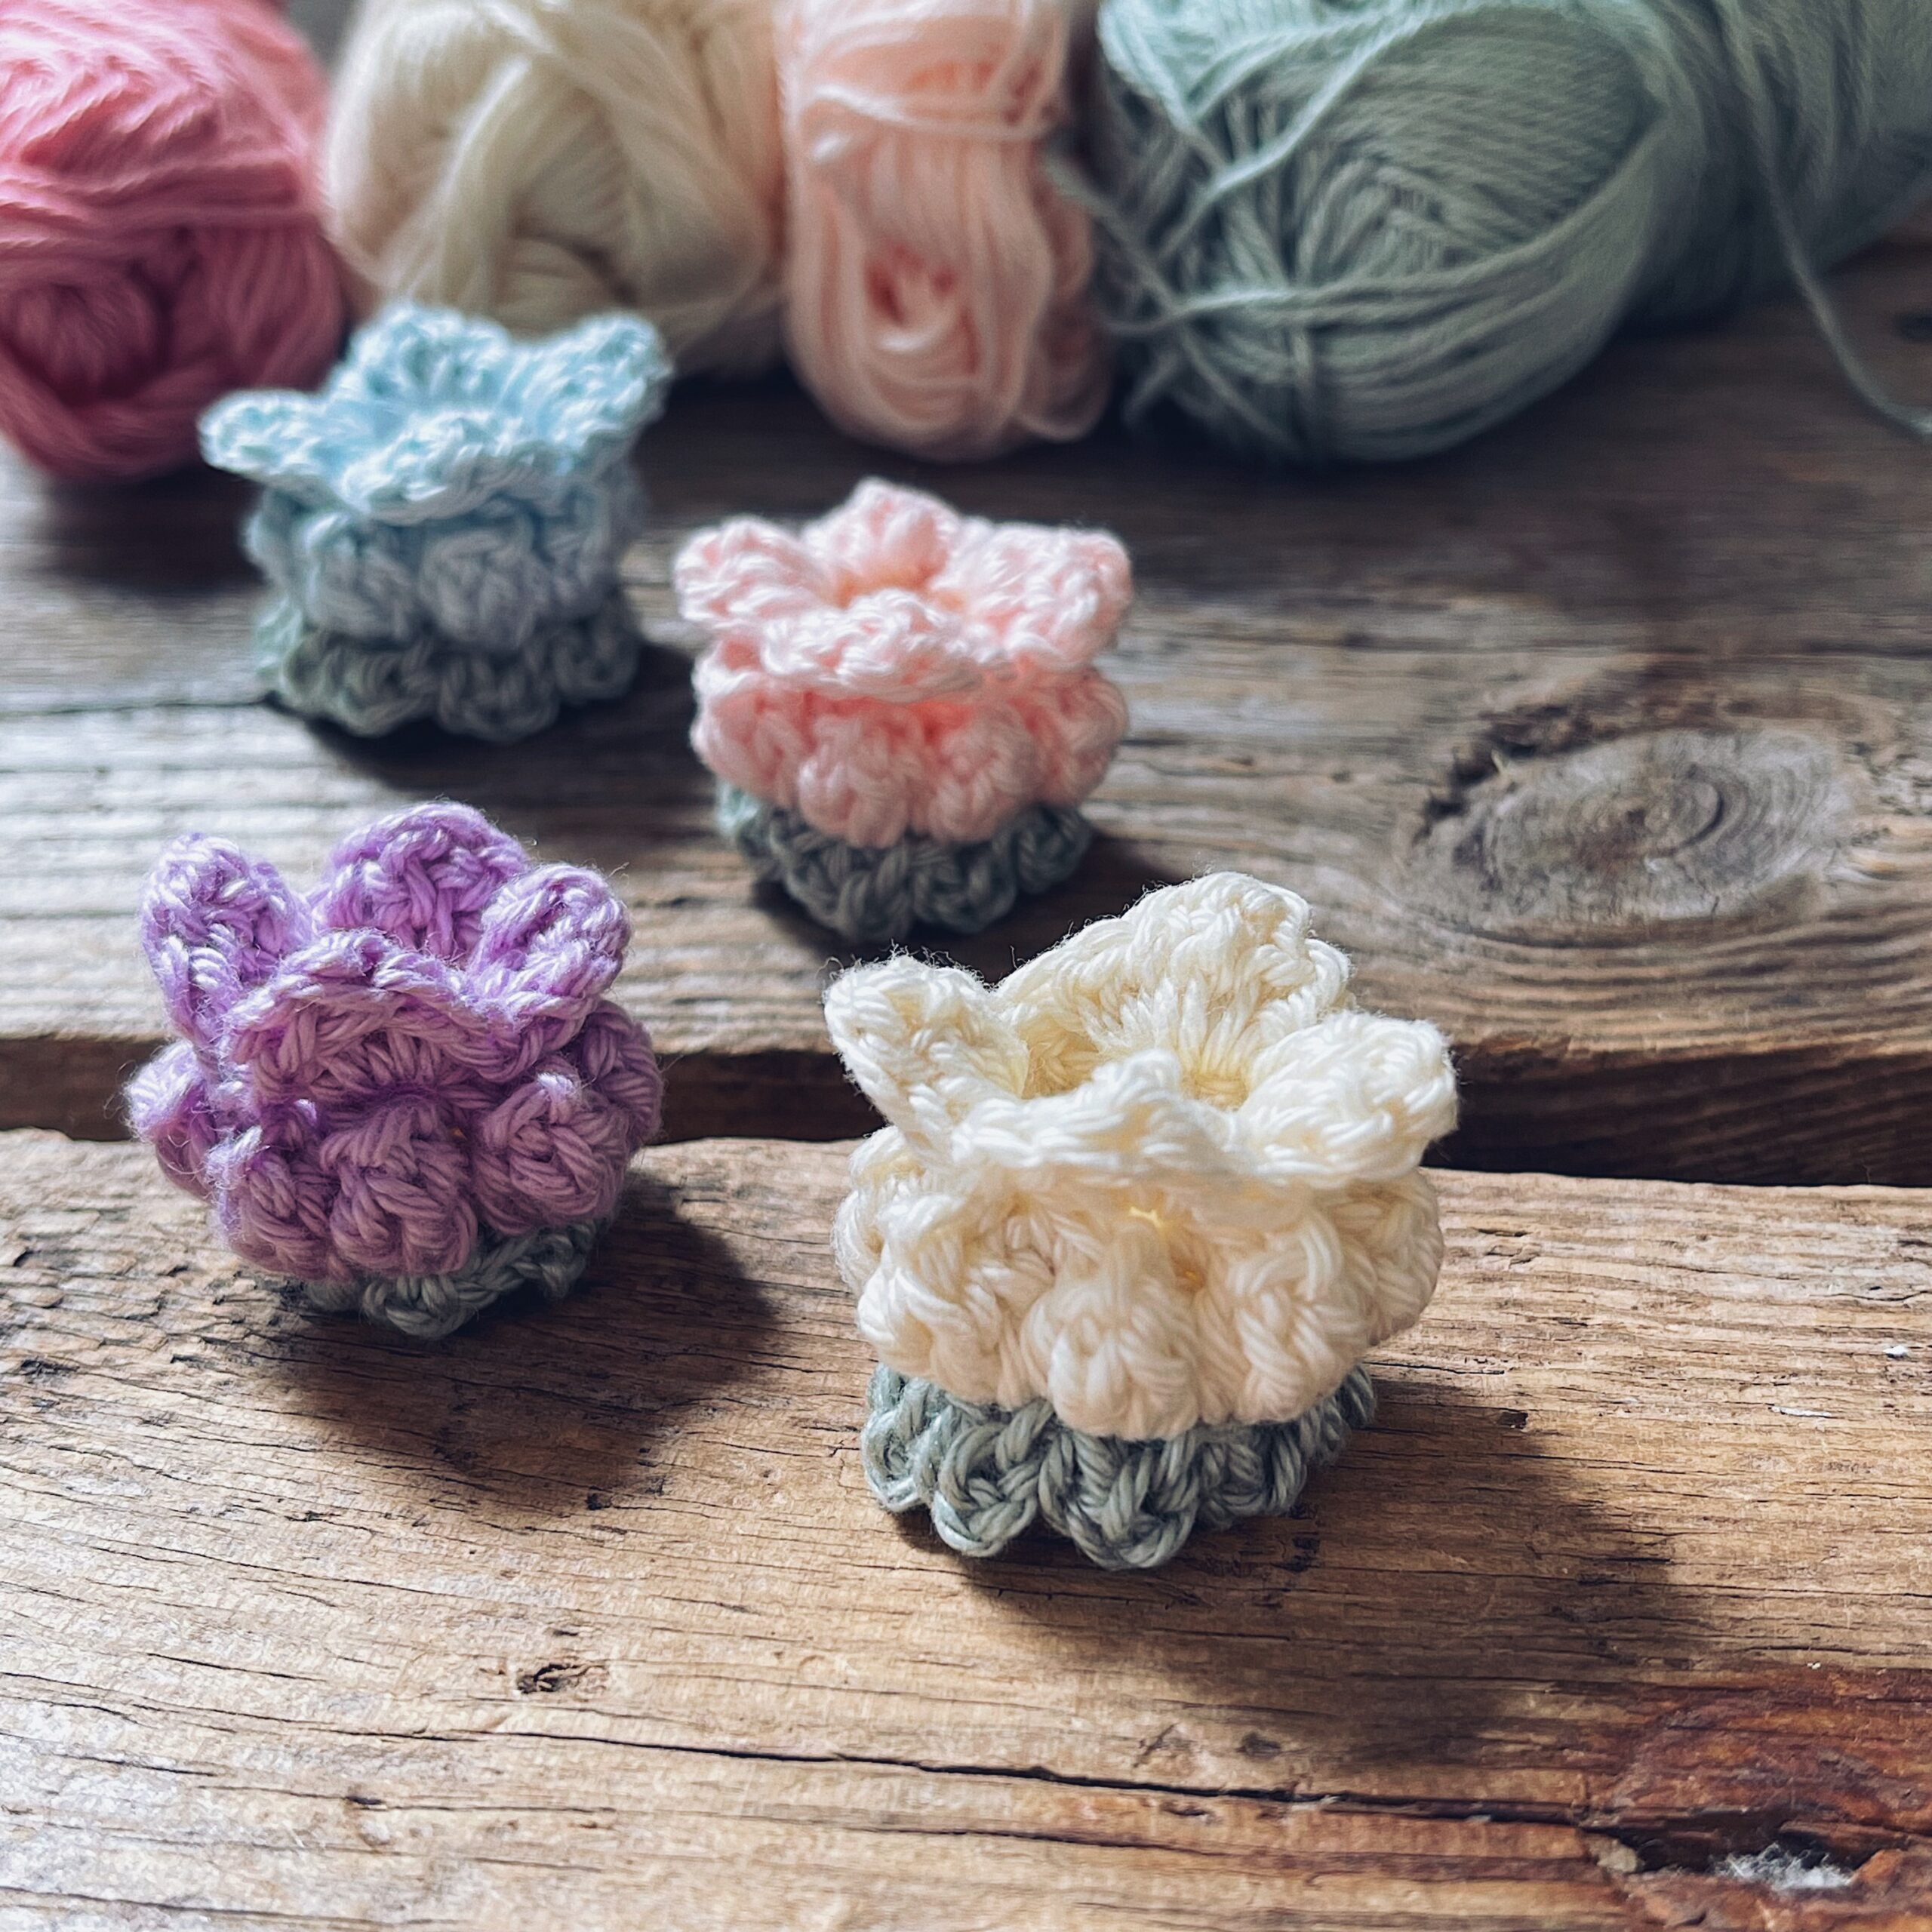 Four Poppy Pod Flowers in white, lilac, pink and blue colors placed on a wooden background together with yarn skeins